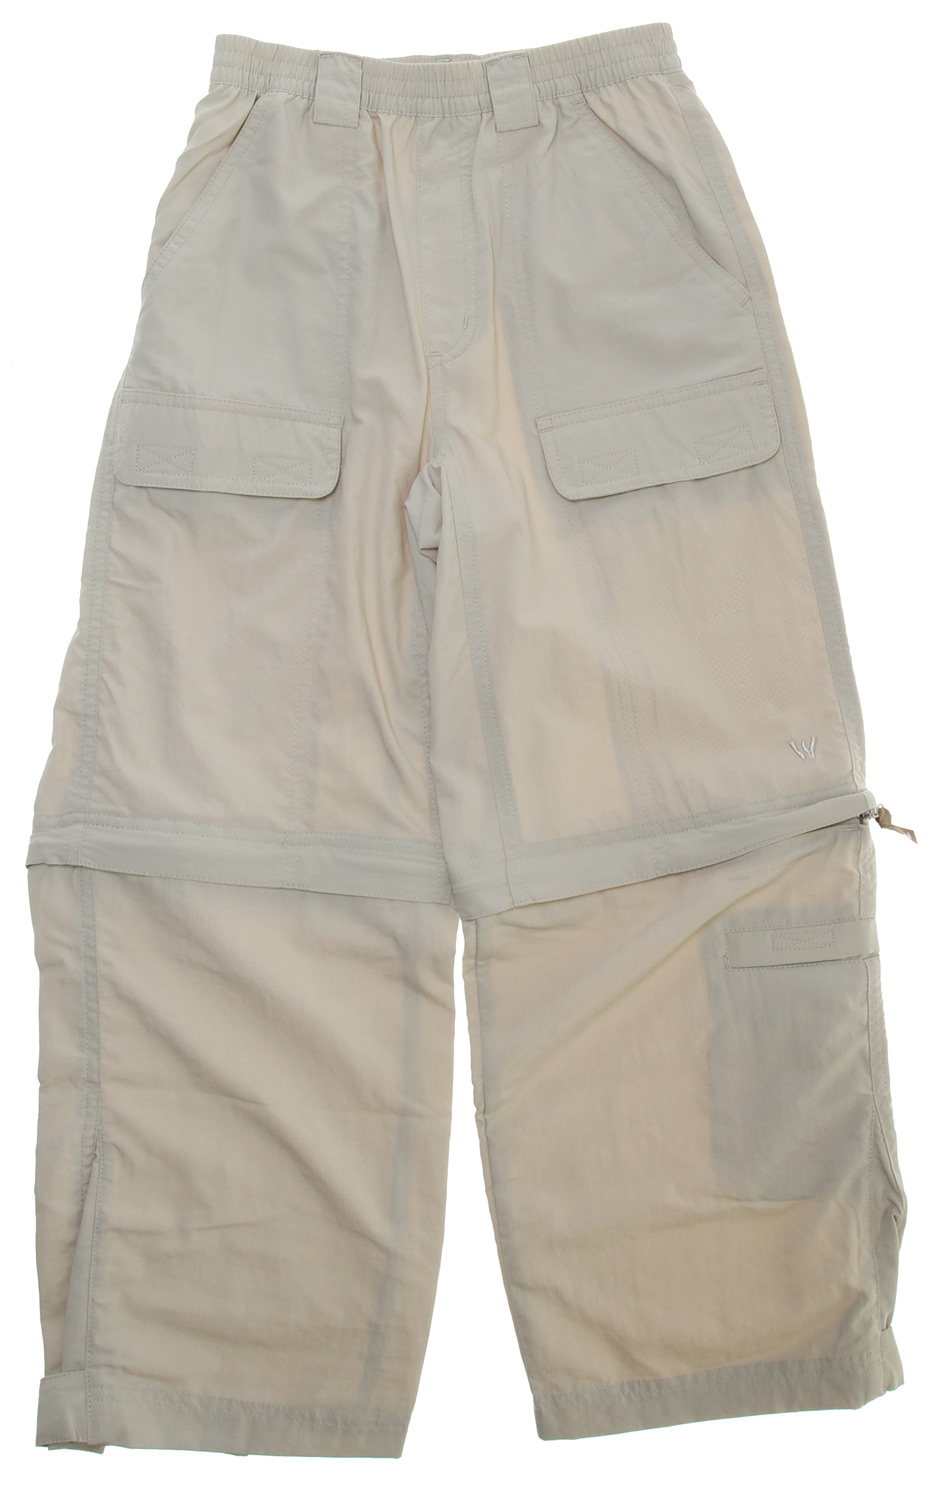 "Camp and Hike This versatile zip off pant easily transforms into shorts, making it perfect for all activities. The plethora of pockets will store all their gadgets and the lightweight fabric dries quickly should they get wet while playing in the lake.Key Features of the White Sierra Trail Convertible Pants: 100% nylon woven Convertible pant Comfort fit full elastic Pull on pant Velcro secure front cargo pockets Velcro secure back pockets UPF 30 Quick dry Short Inseam: 10"" Inseam: 25"" - $24.95"